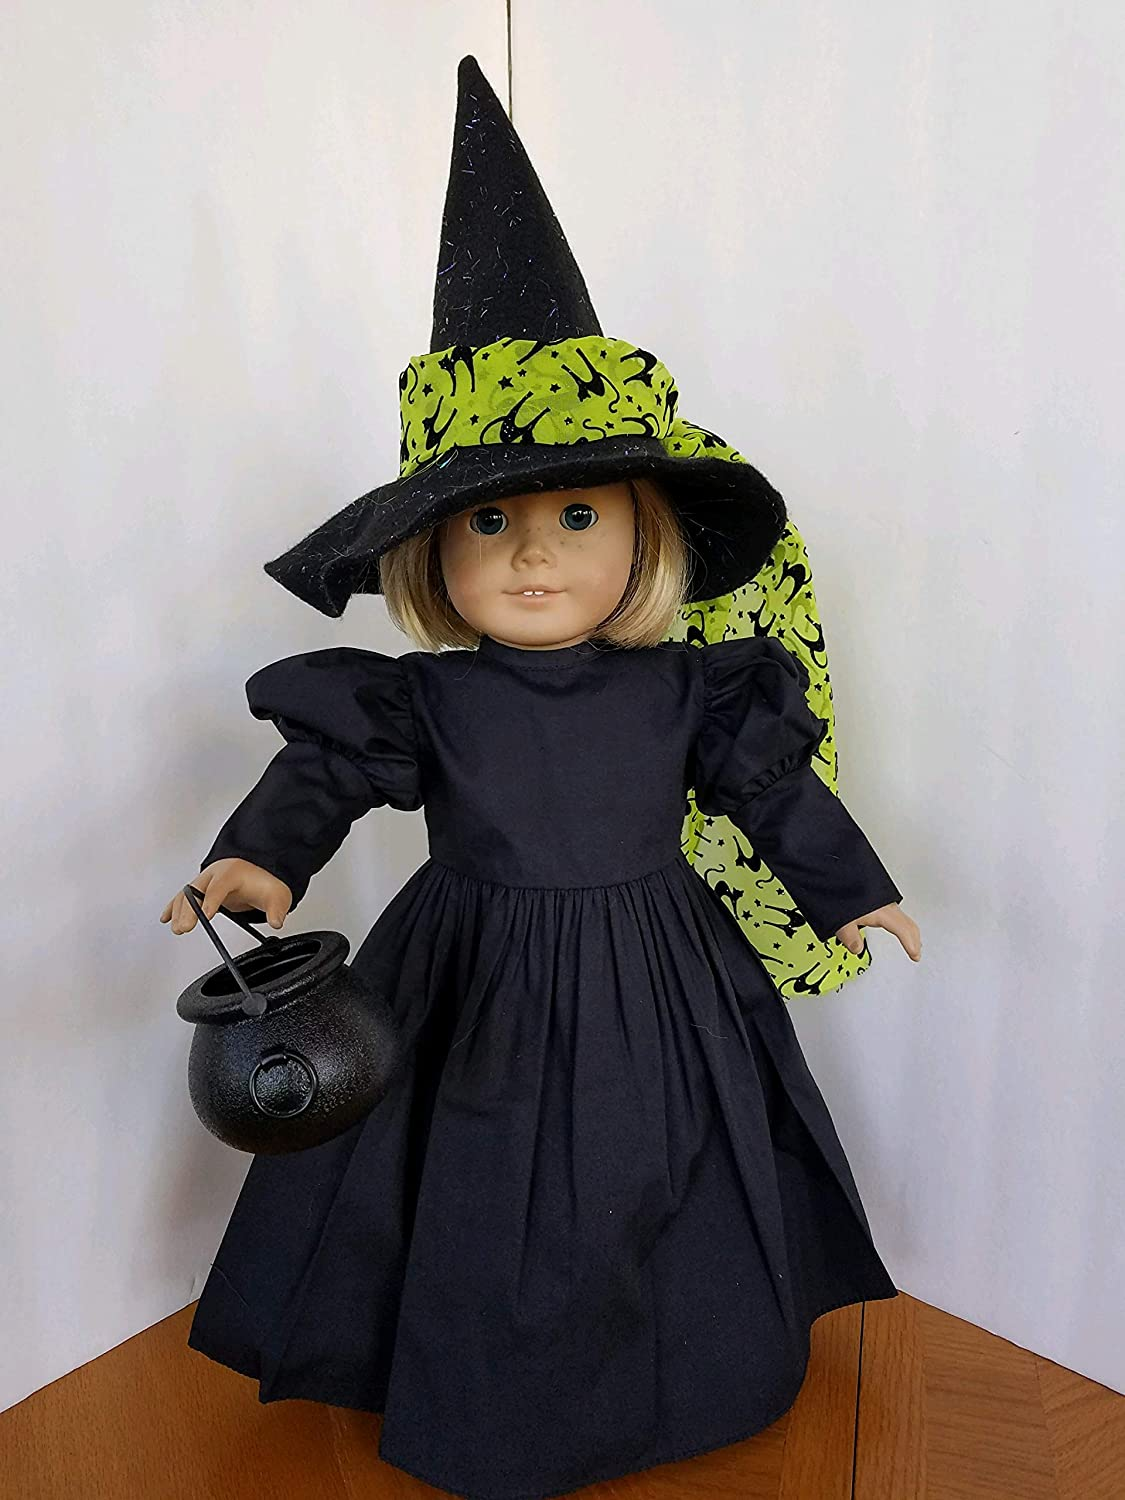 Handmade! Black Witch Costume with Hat Options fits American Girl